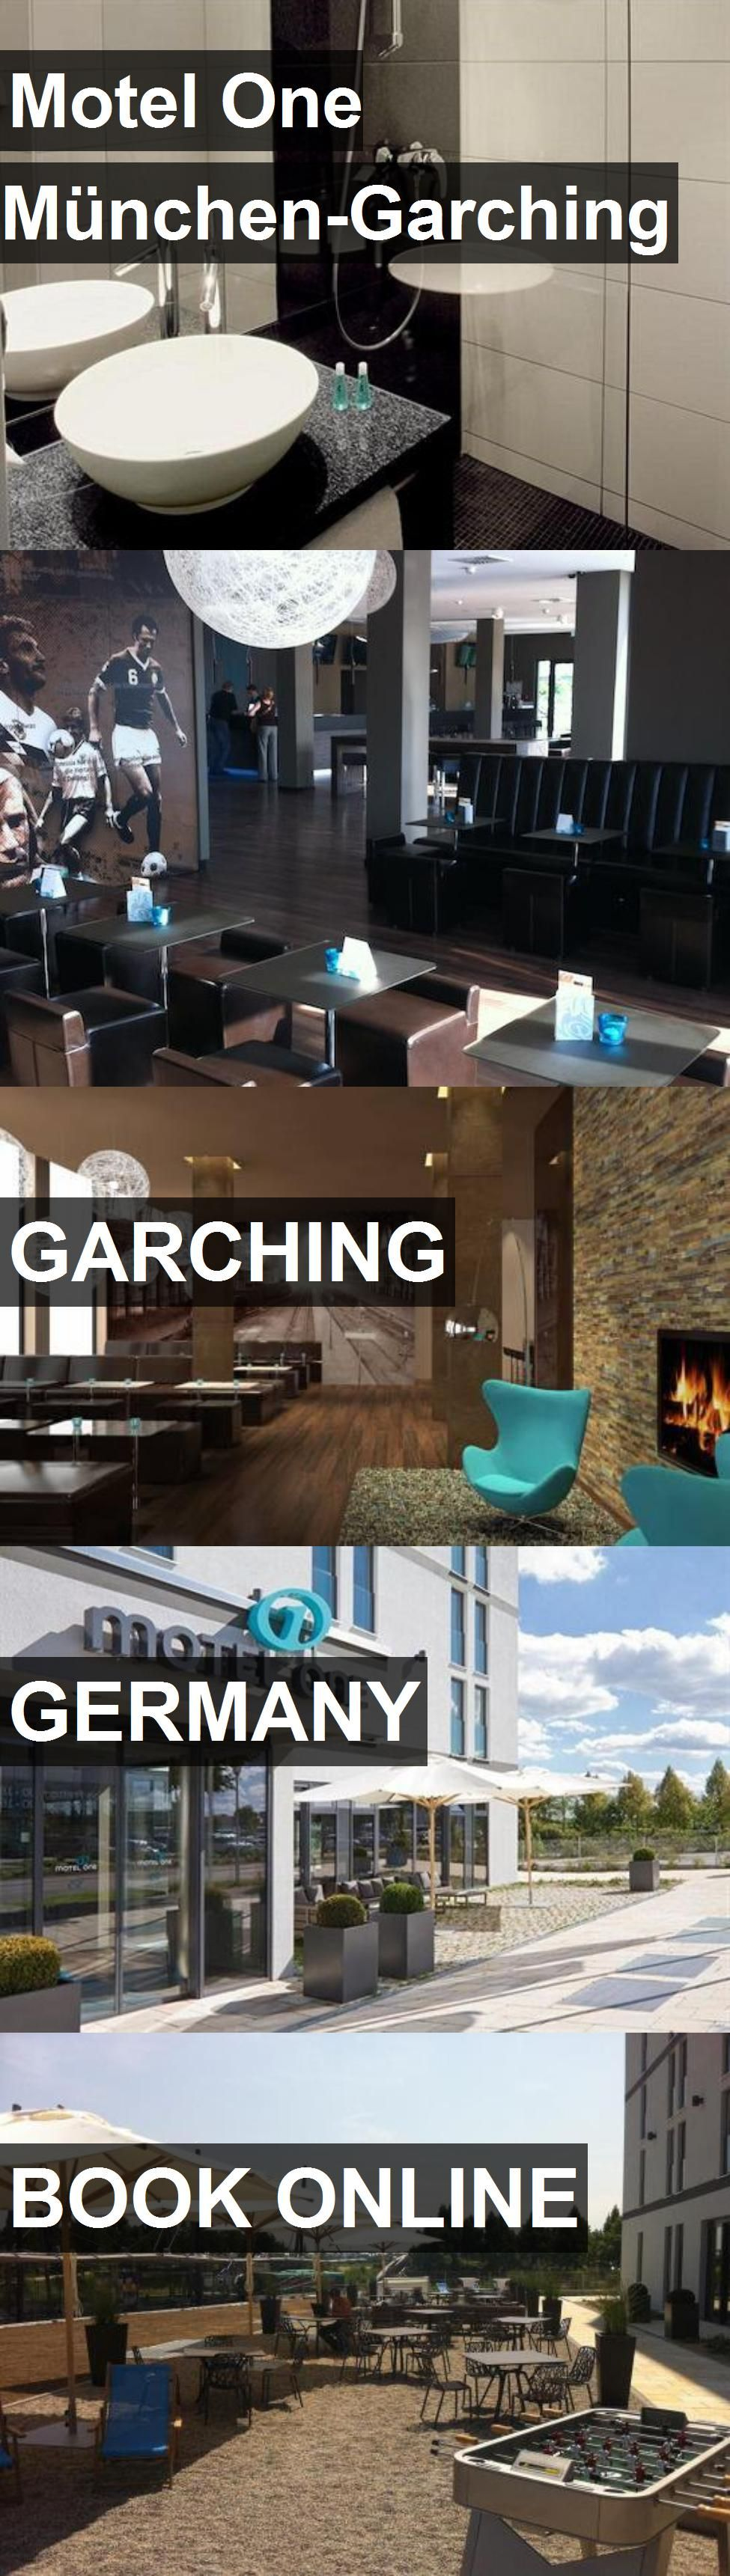 Hotel One Garching Hotel Motel One München Garching In Garching Germany For